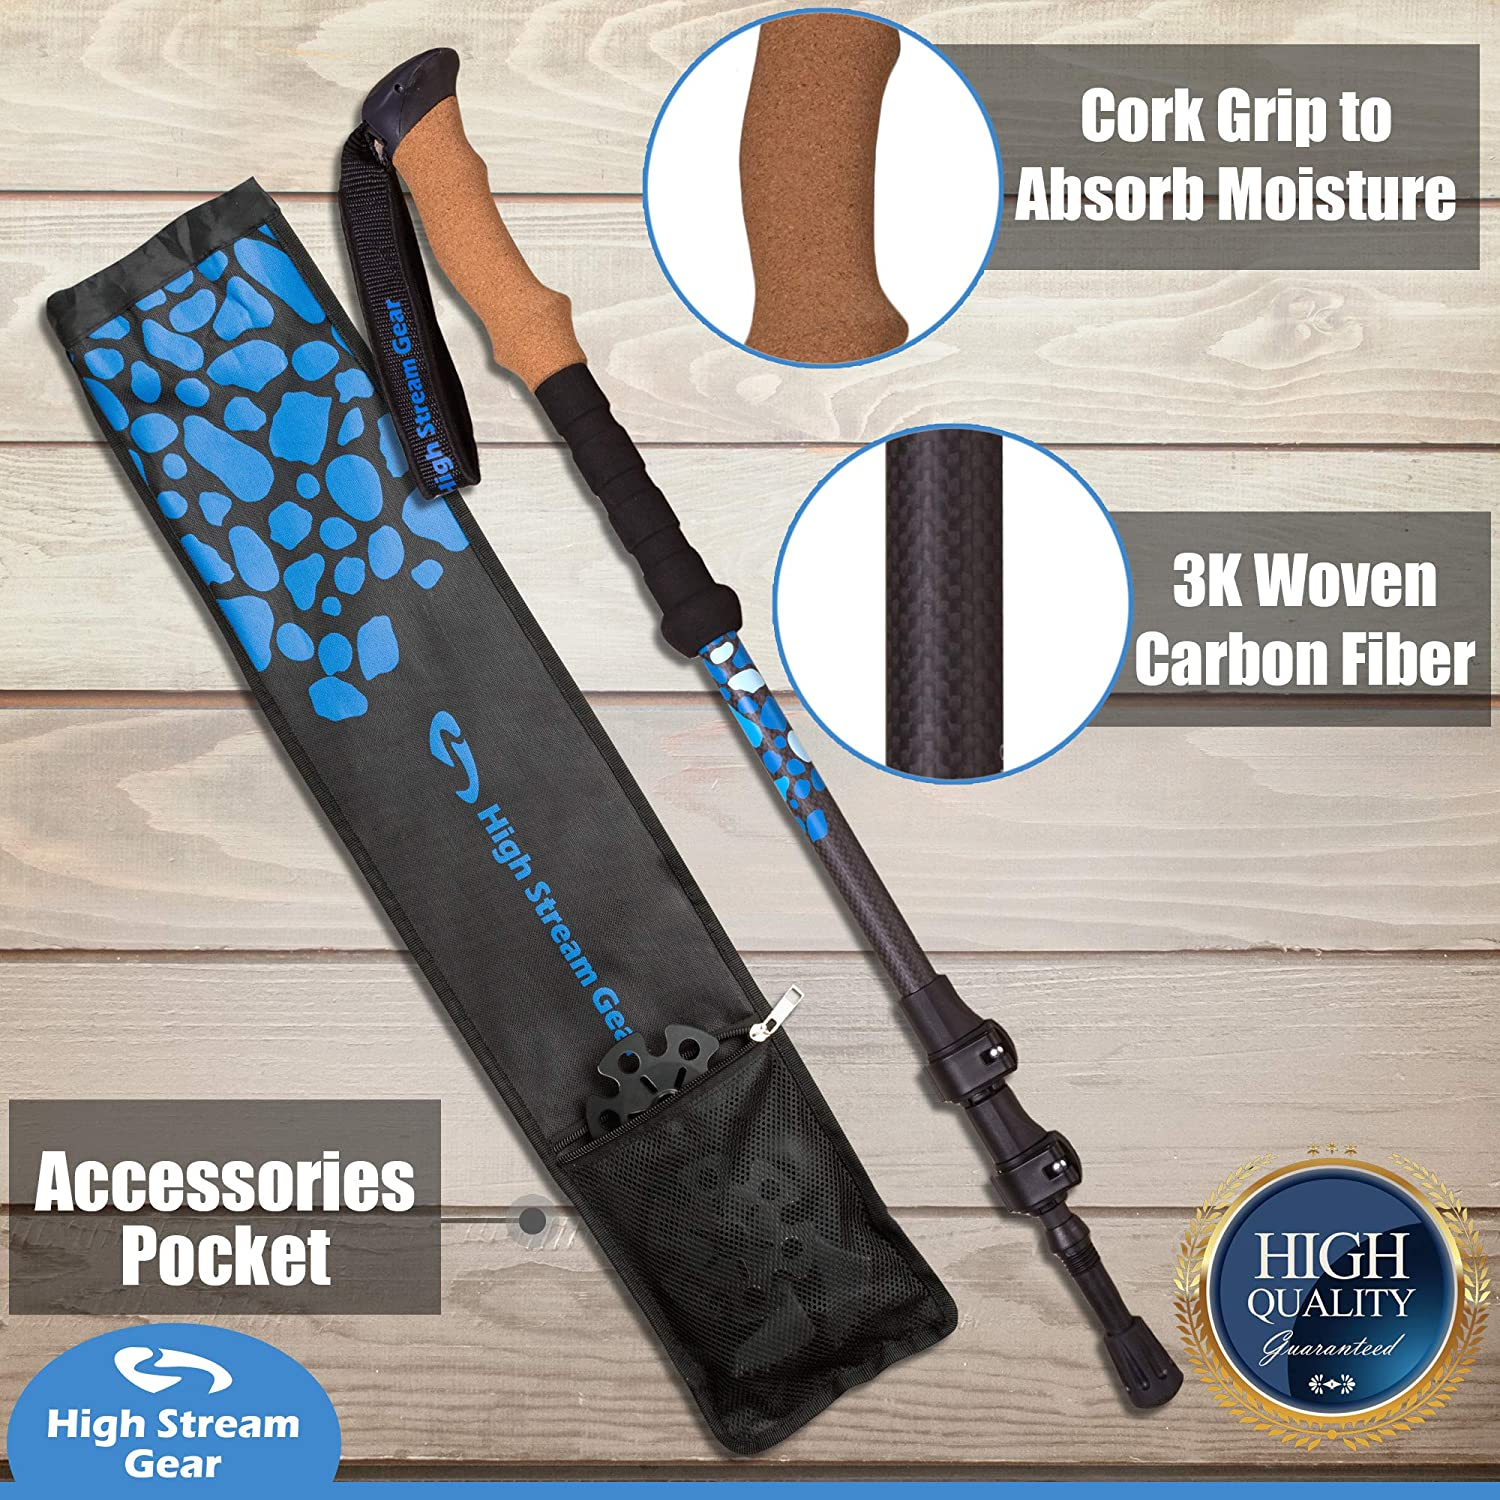 Hiking Poles High Stream Gear Trekking Poles Made of Carbon Fiber Telescopic Compact Ultra-Lightweight Real Cork Grip Handles Designed by Professional Walkers and Hikers